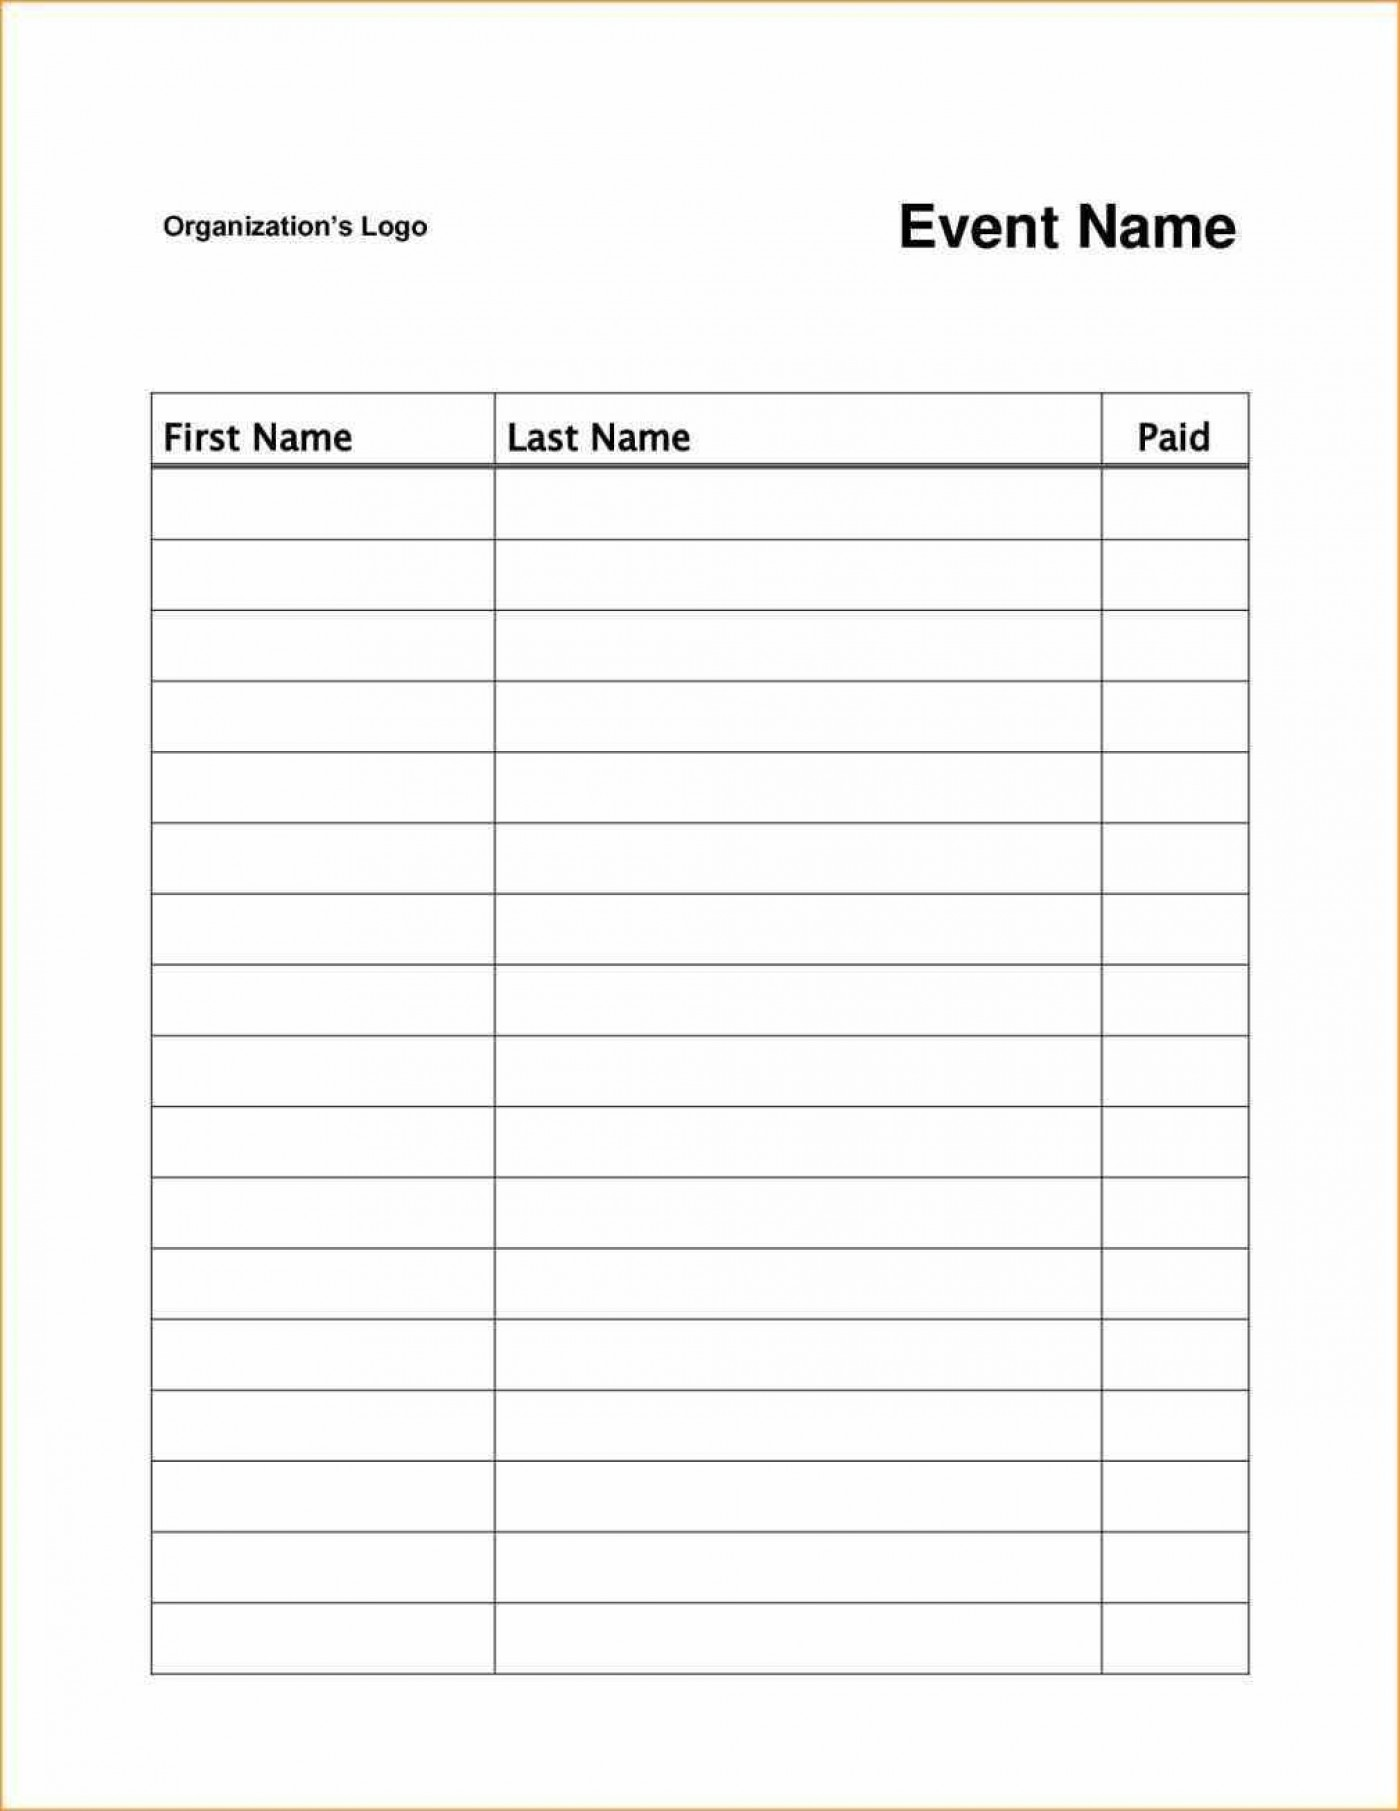 003 Magnificent Sign Up Sheet Template High Resolution  Volunteer In Word Work1400